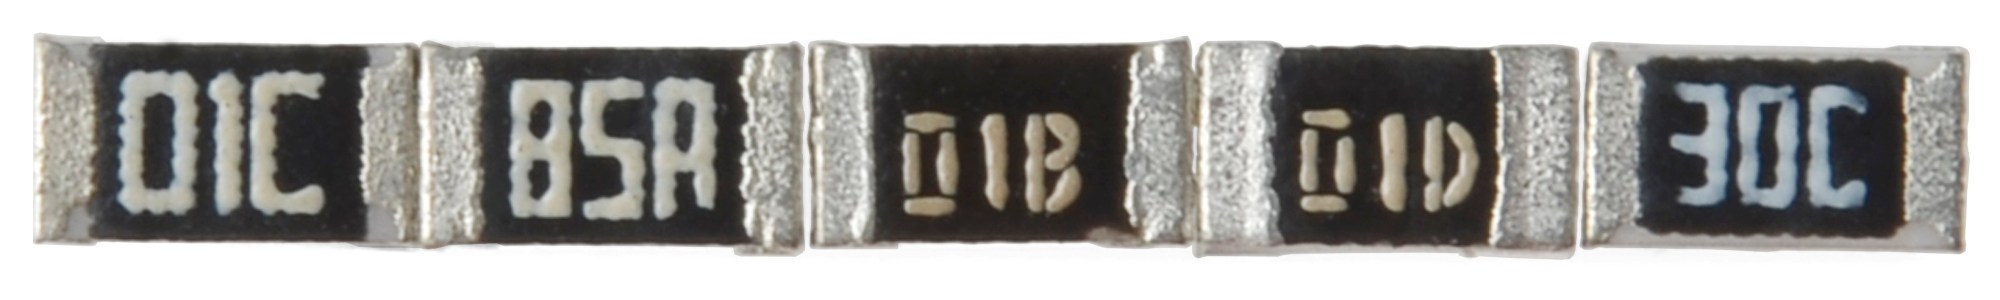 hight resolution of resistors marked with e 96 codes